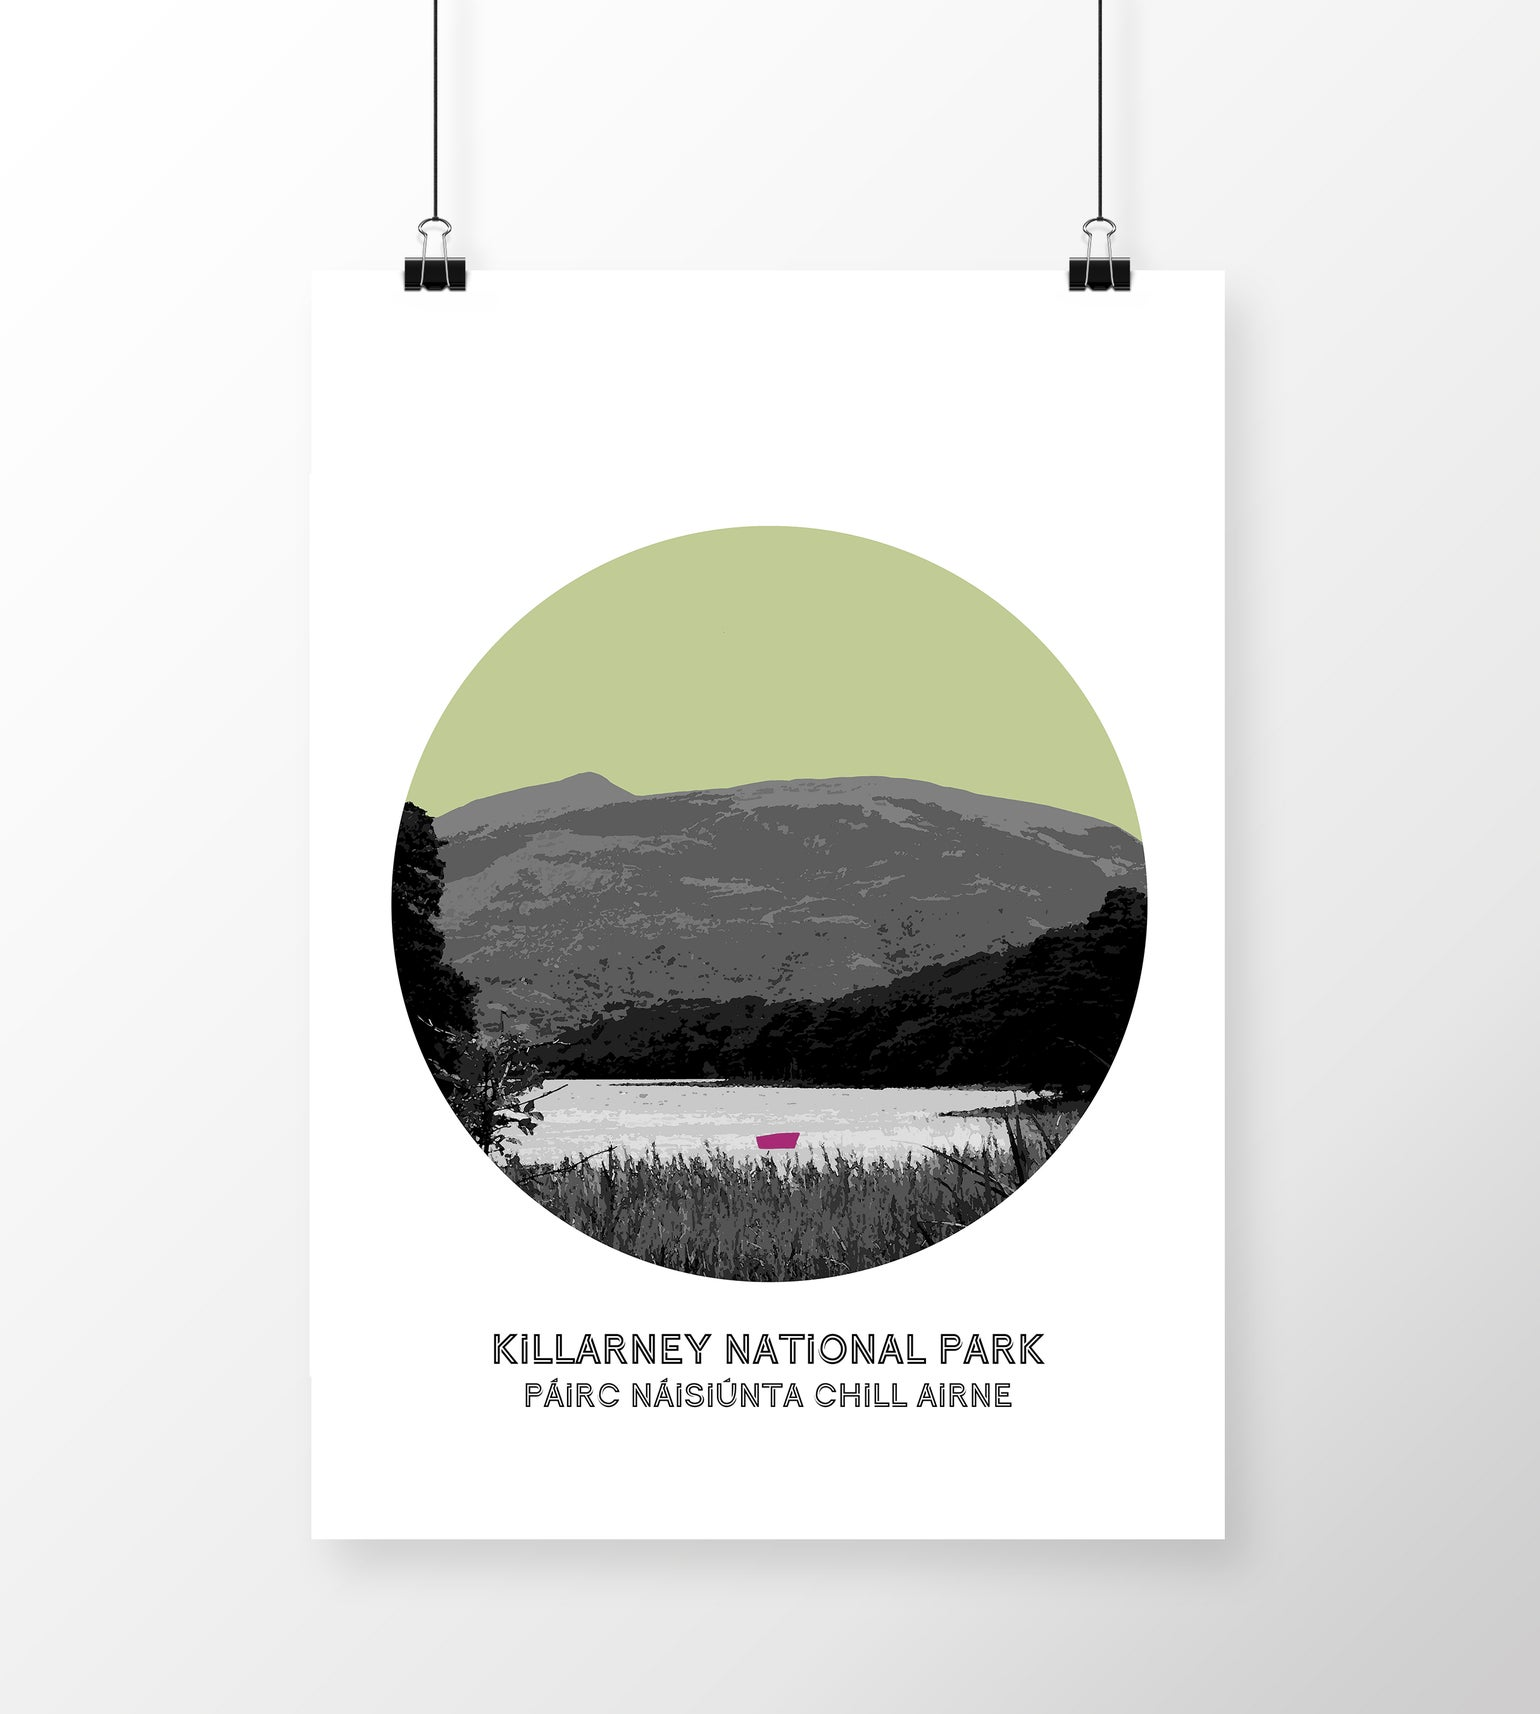 Image of Killarney National Park